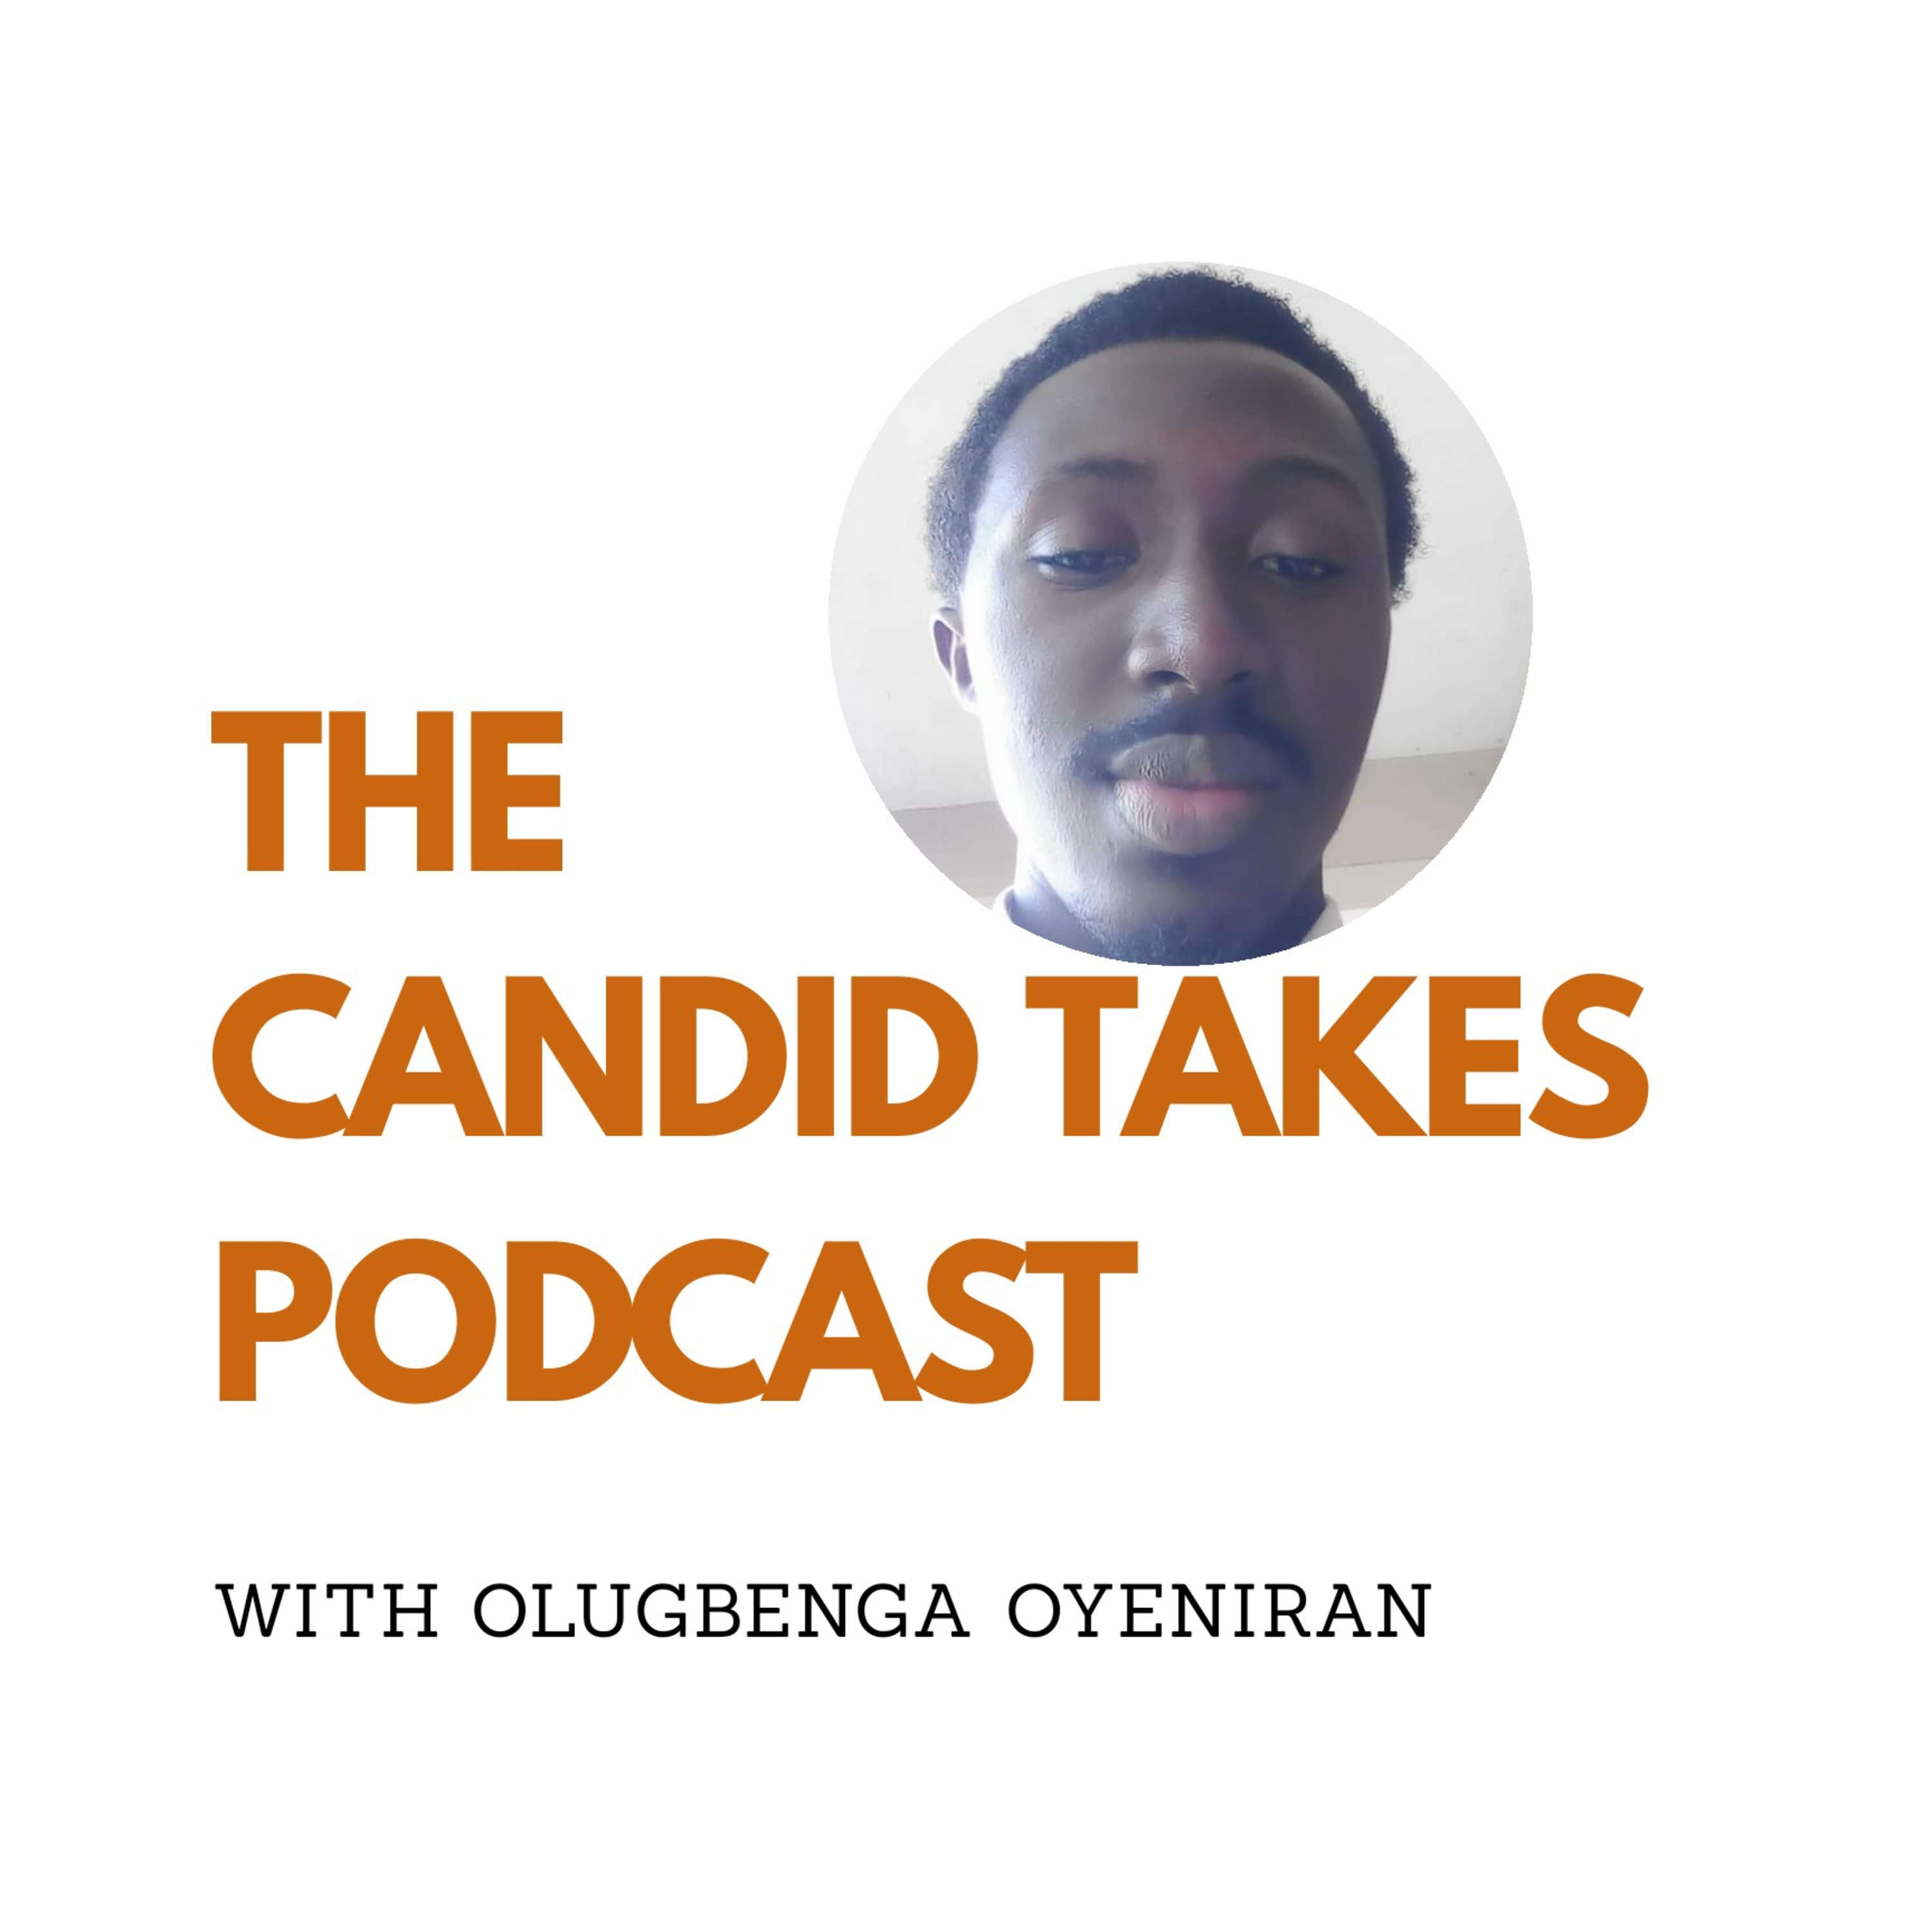 The Candid Takes Podcast podcast